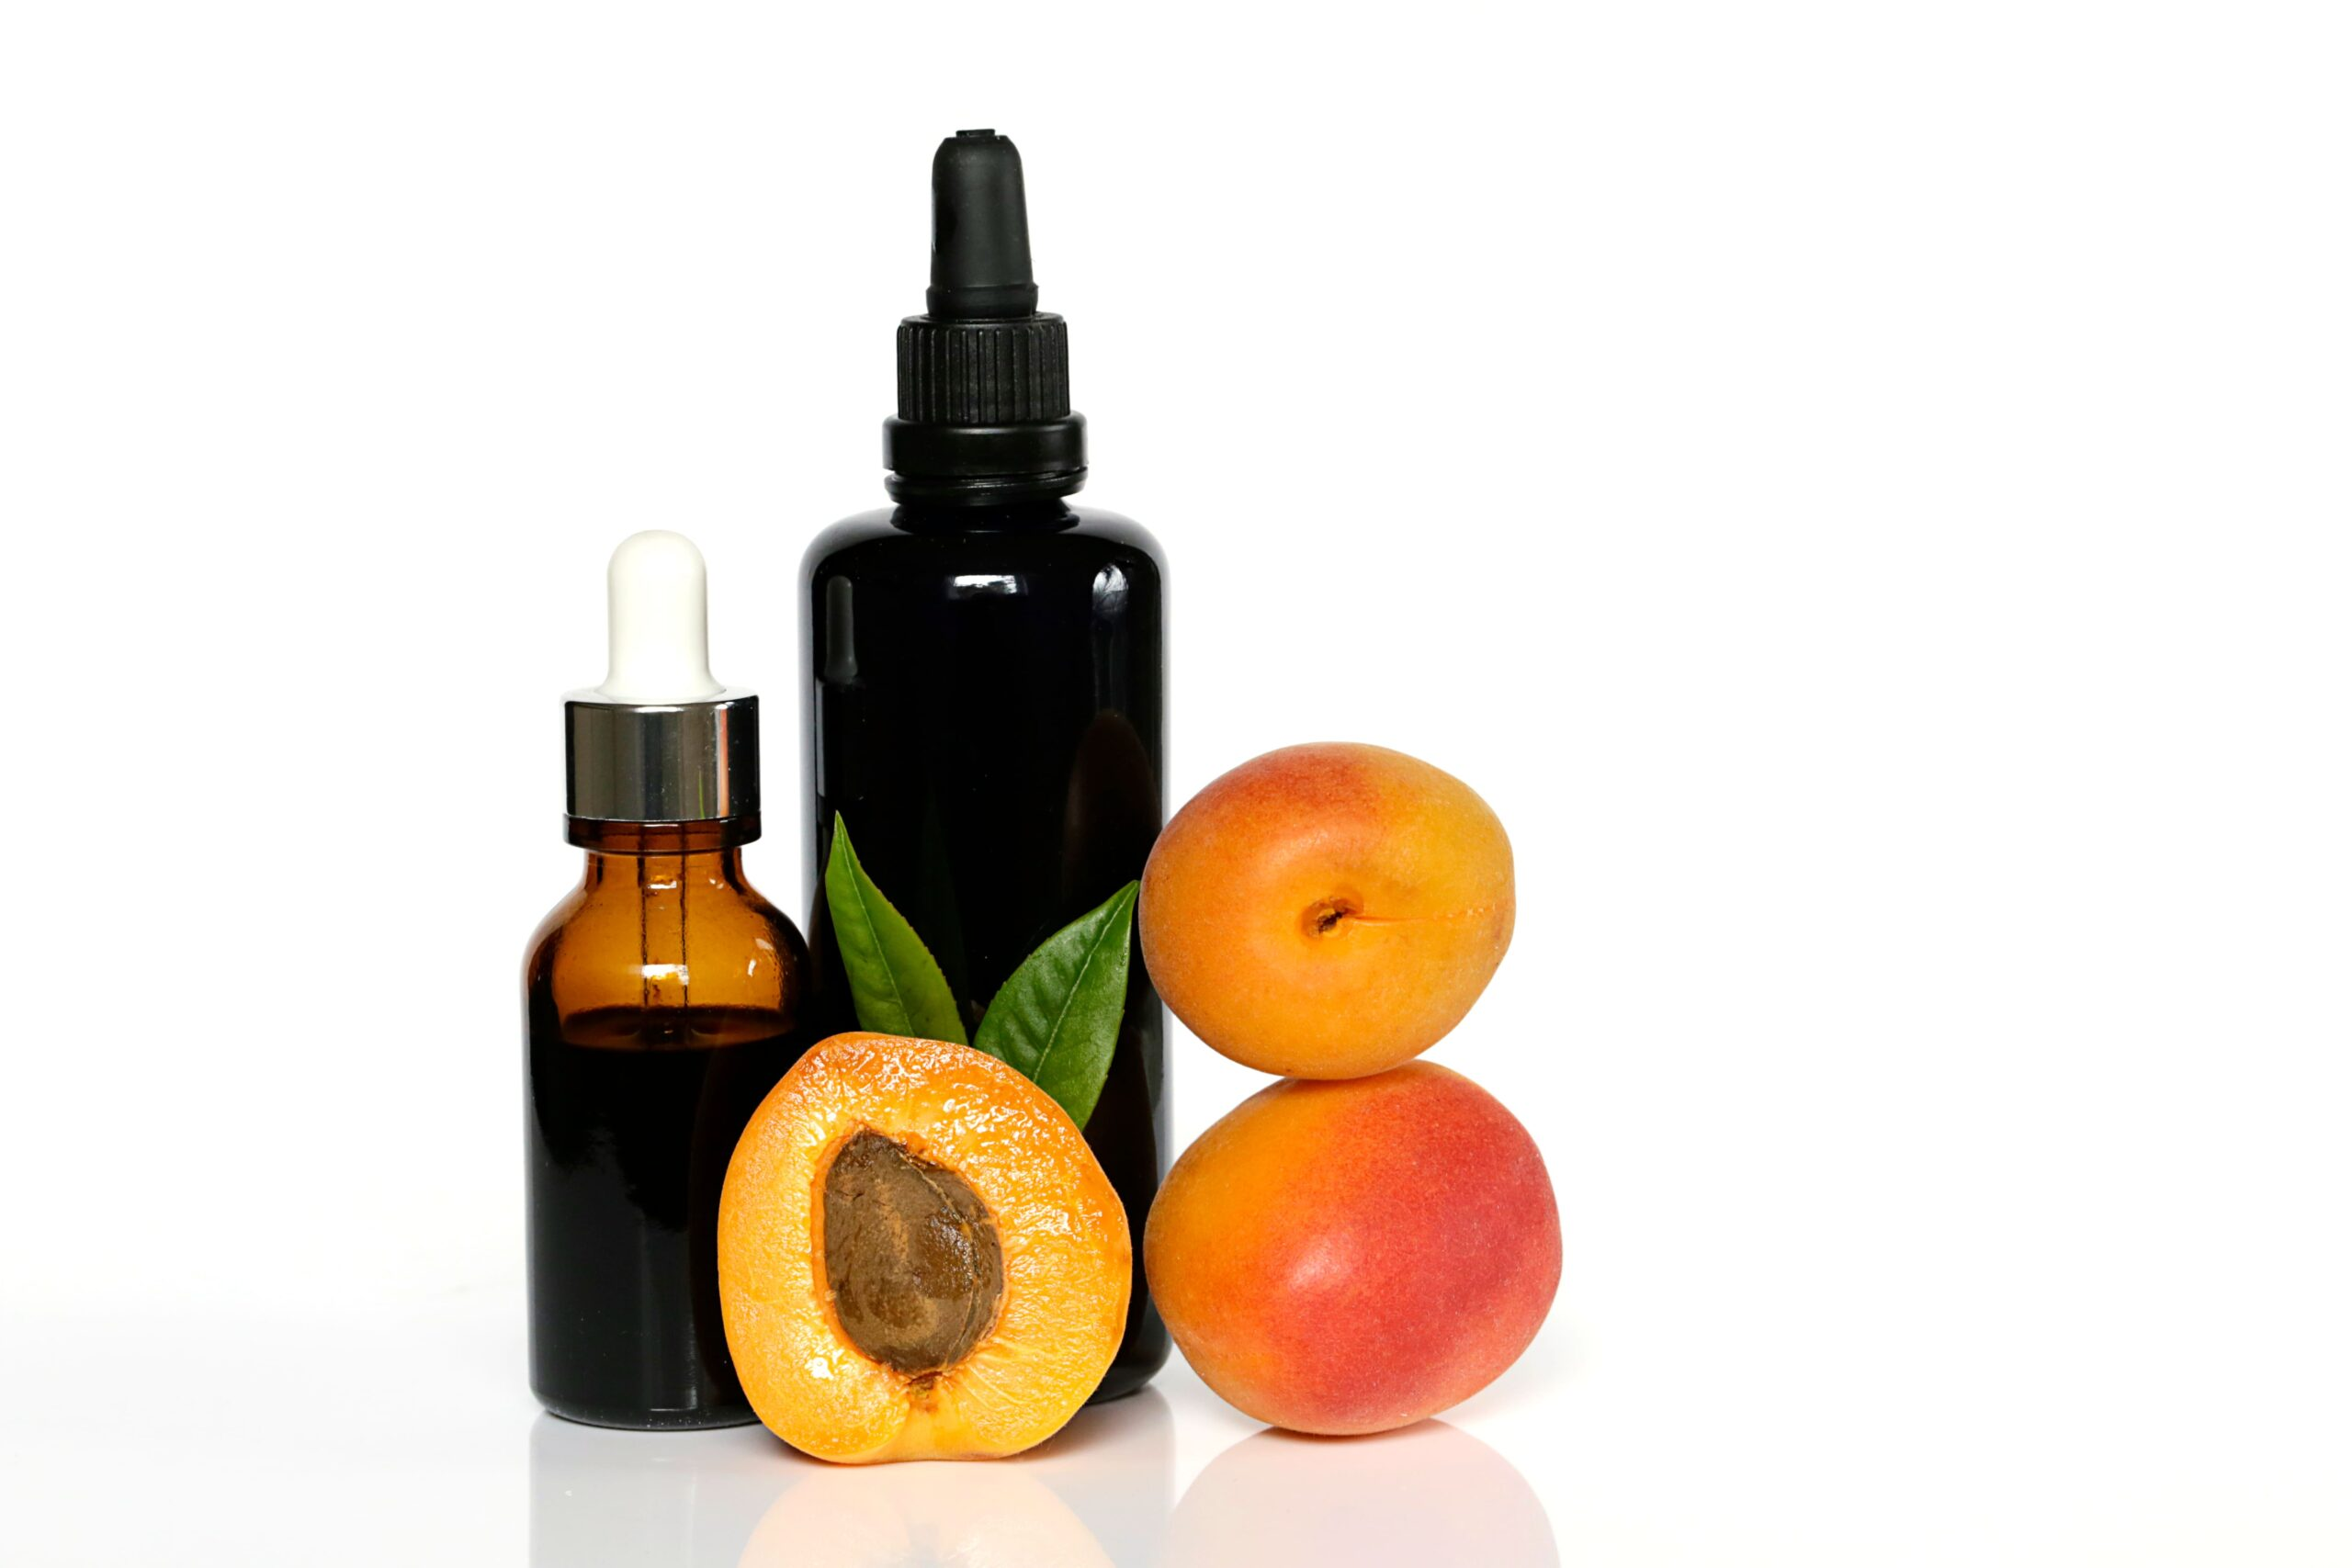 apricot oil apricot oil in glass bottle and ripe apricots 1 scaled